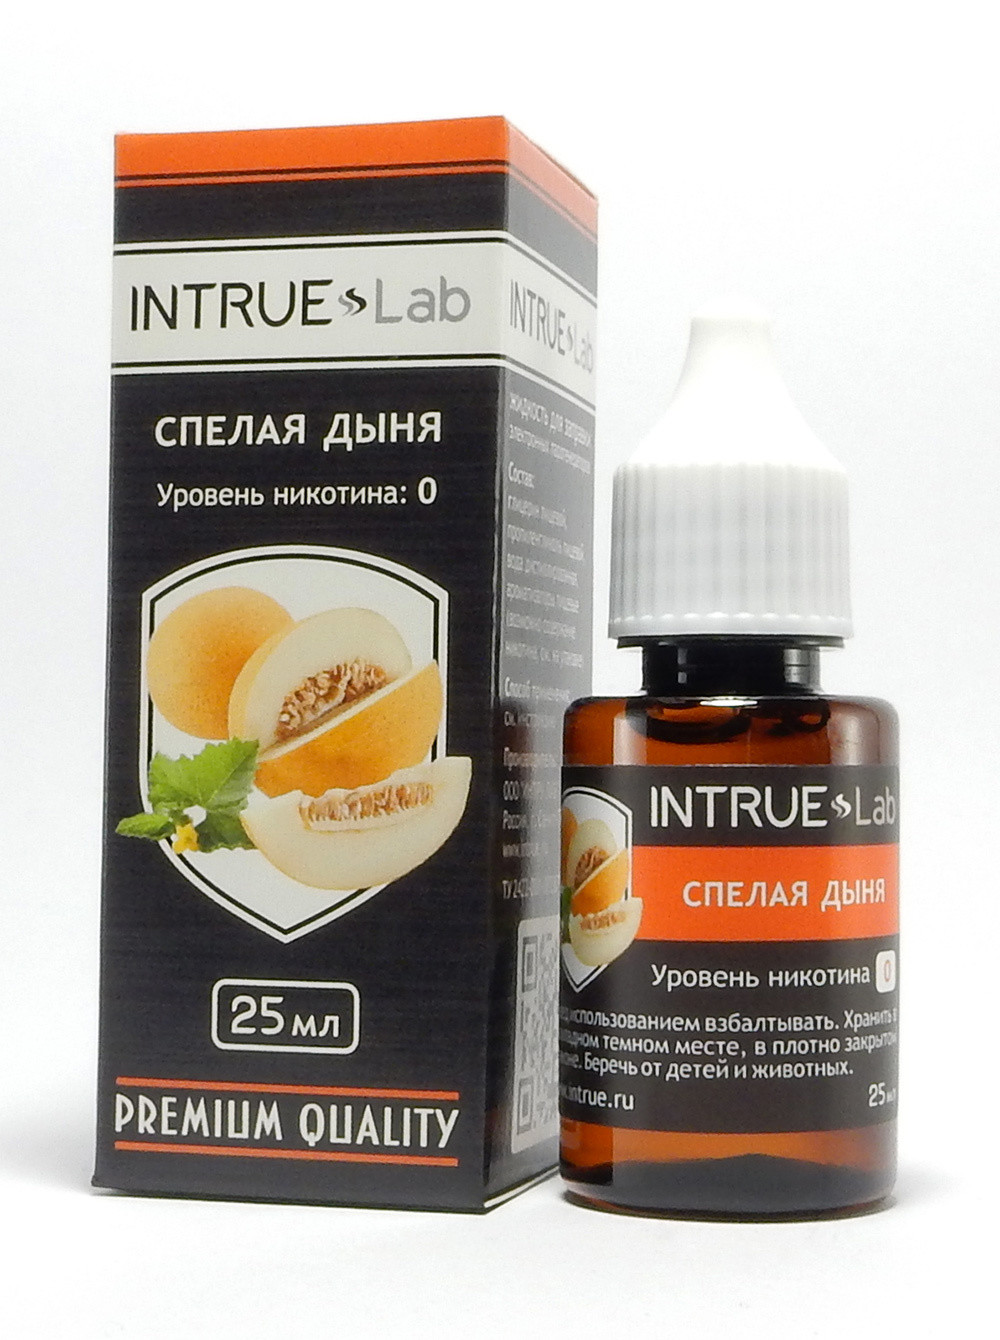 INTRUE LAB: СПЕЛАЯ ДЫНЯ 25ML